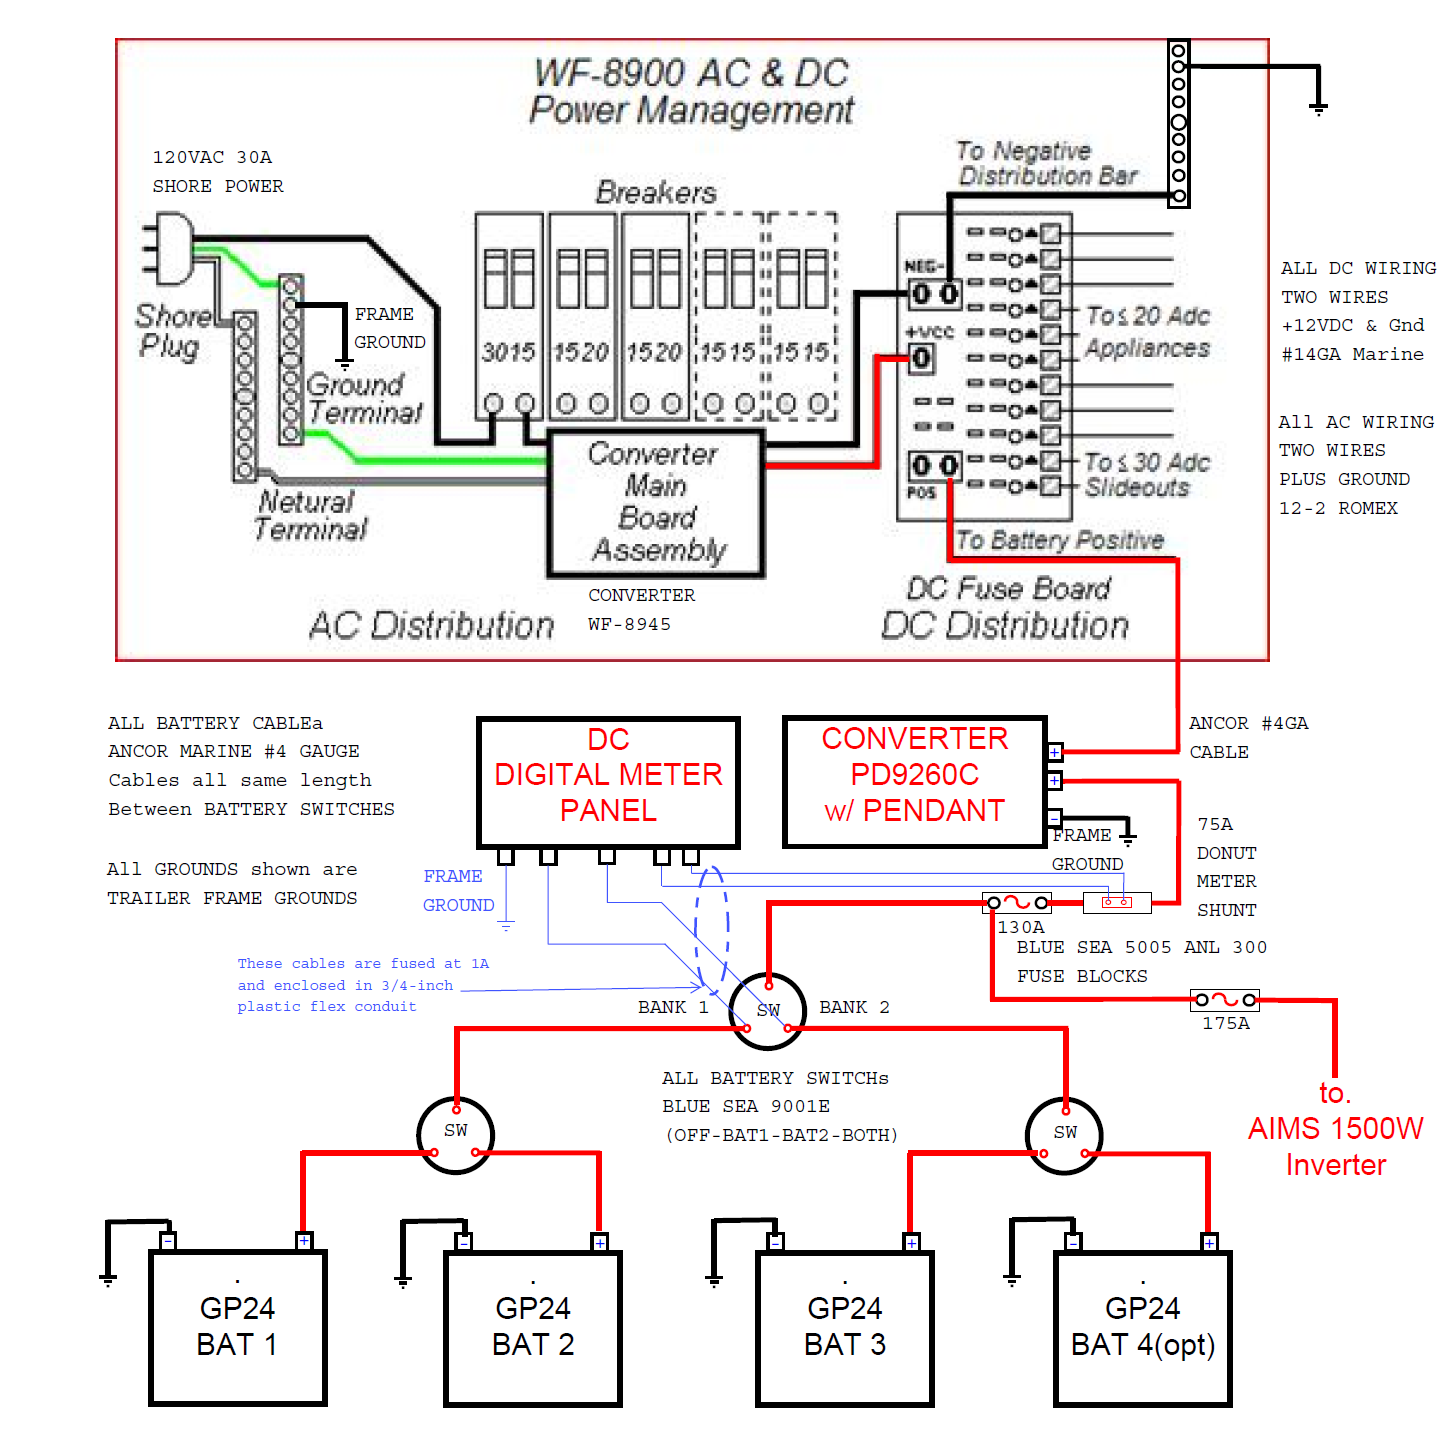 Rv Converter Charger Wiring Diagram: Wfco 8900 Wiring Diagram